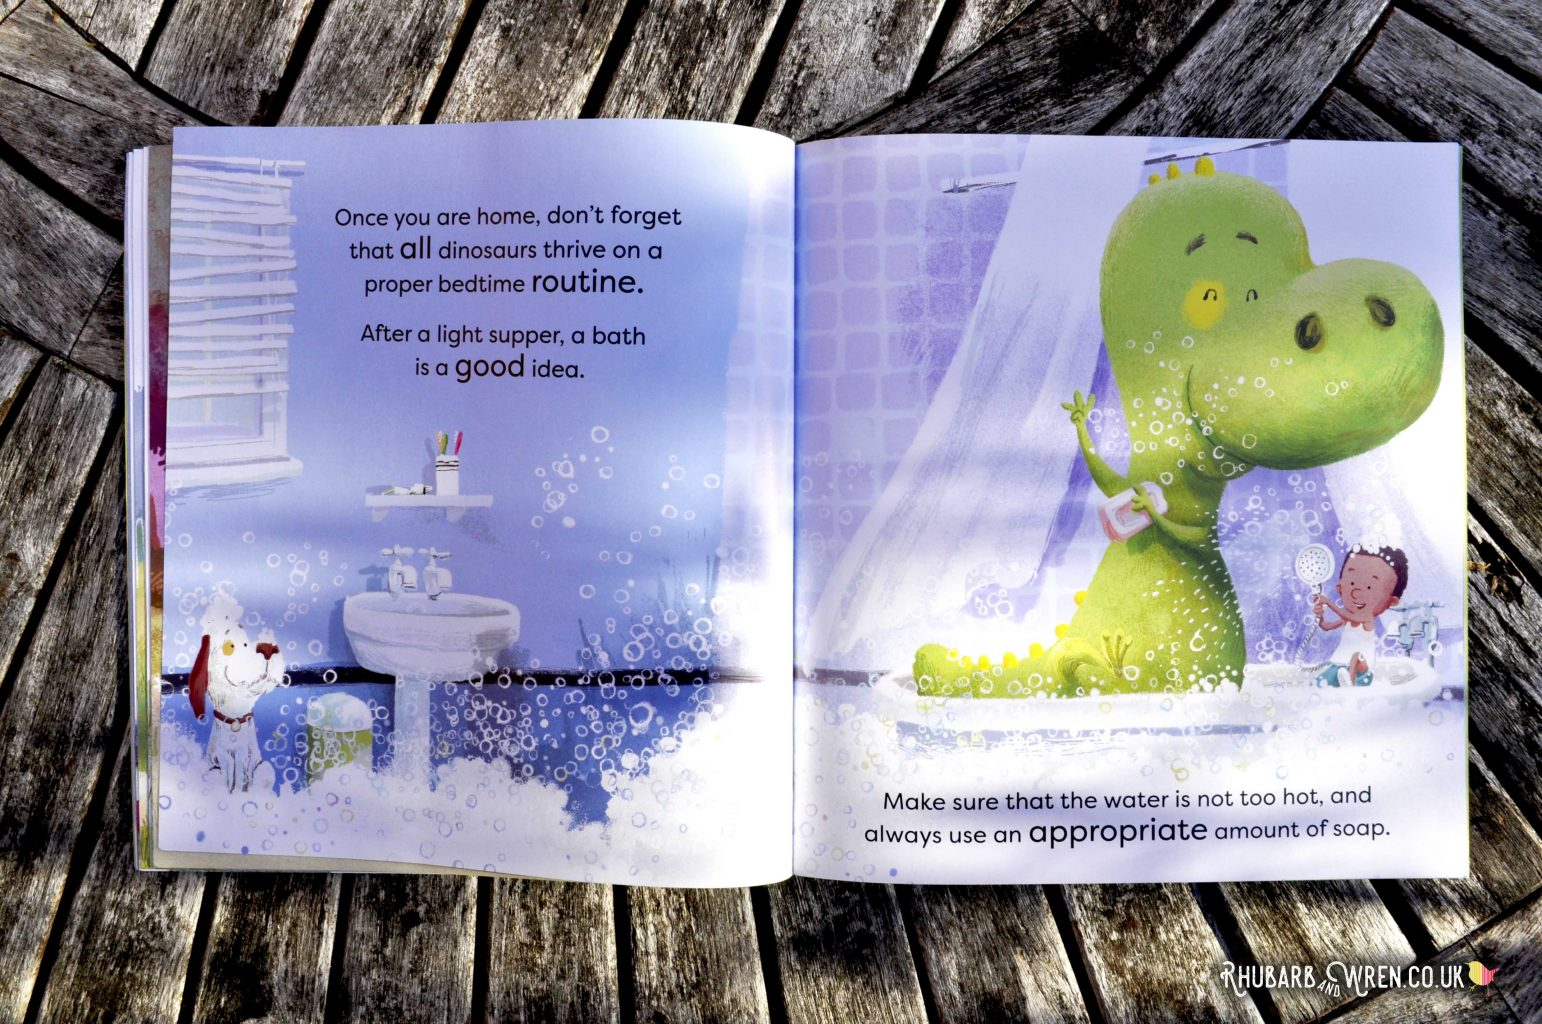 Bathtime with a T-rex in How to Look After Your Dinosaur by Jason Cockcroft